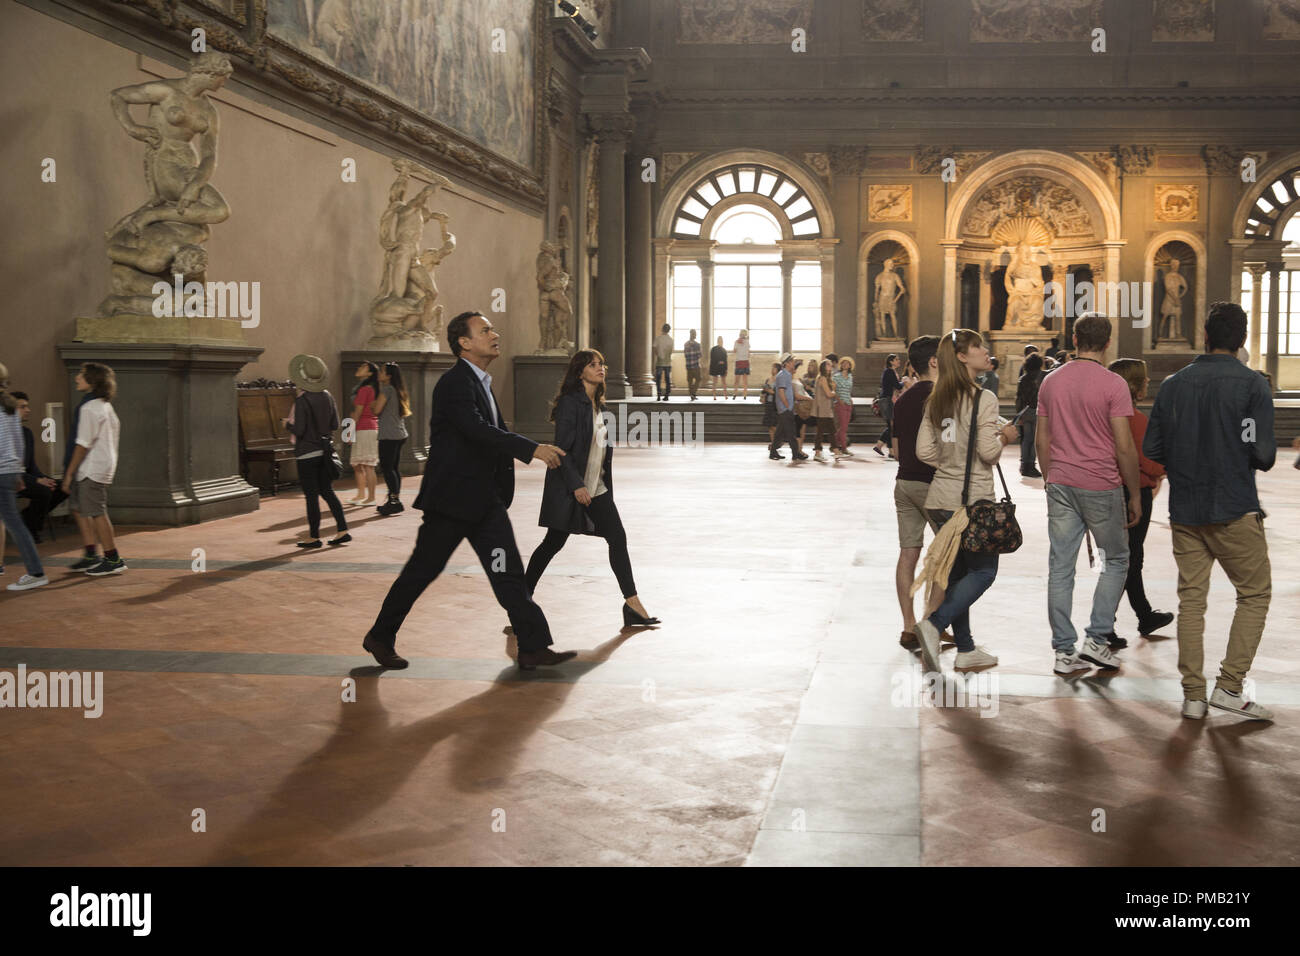 Langdon (Tom Hanks) and Sienna (Felicity Jones) arrive at the Hall of 500 in Columbia Pictures' INFERNO. - Stock Image